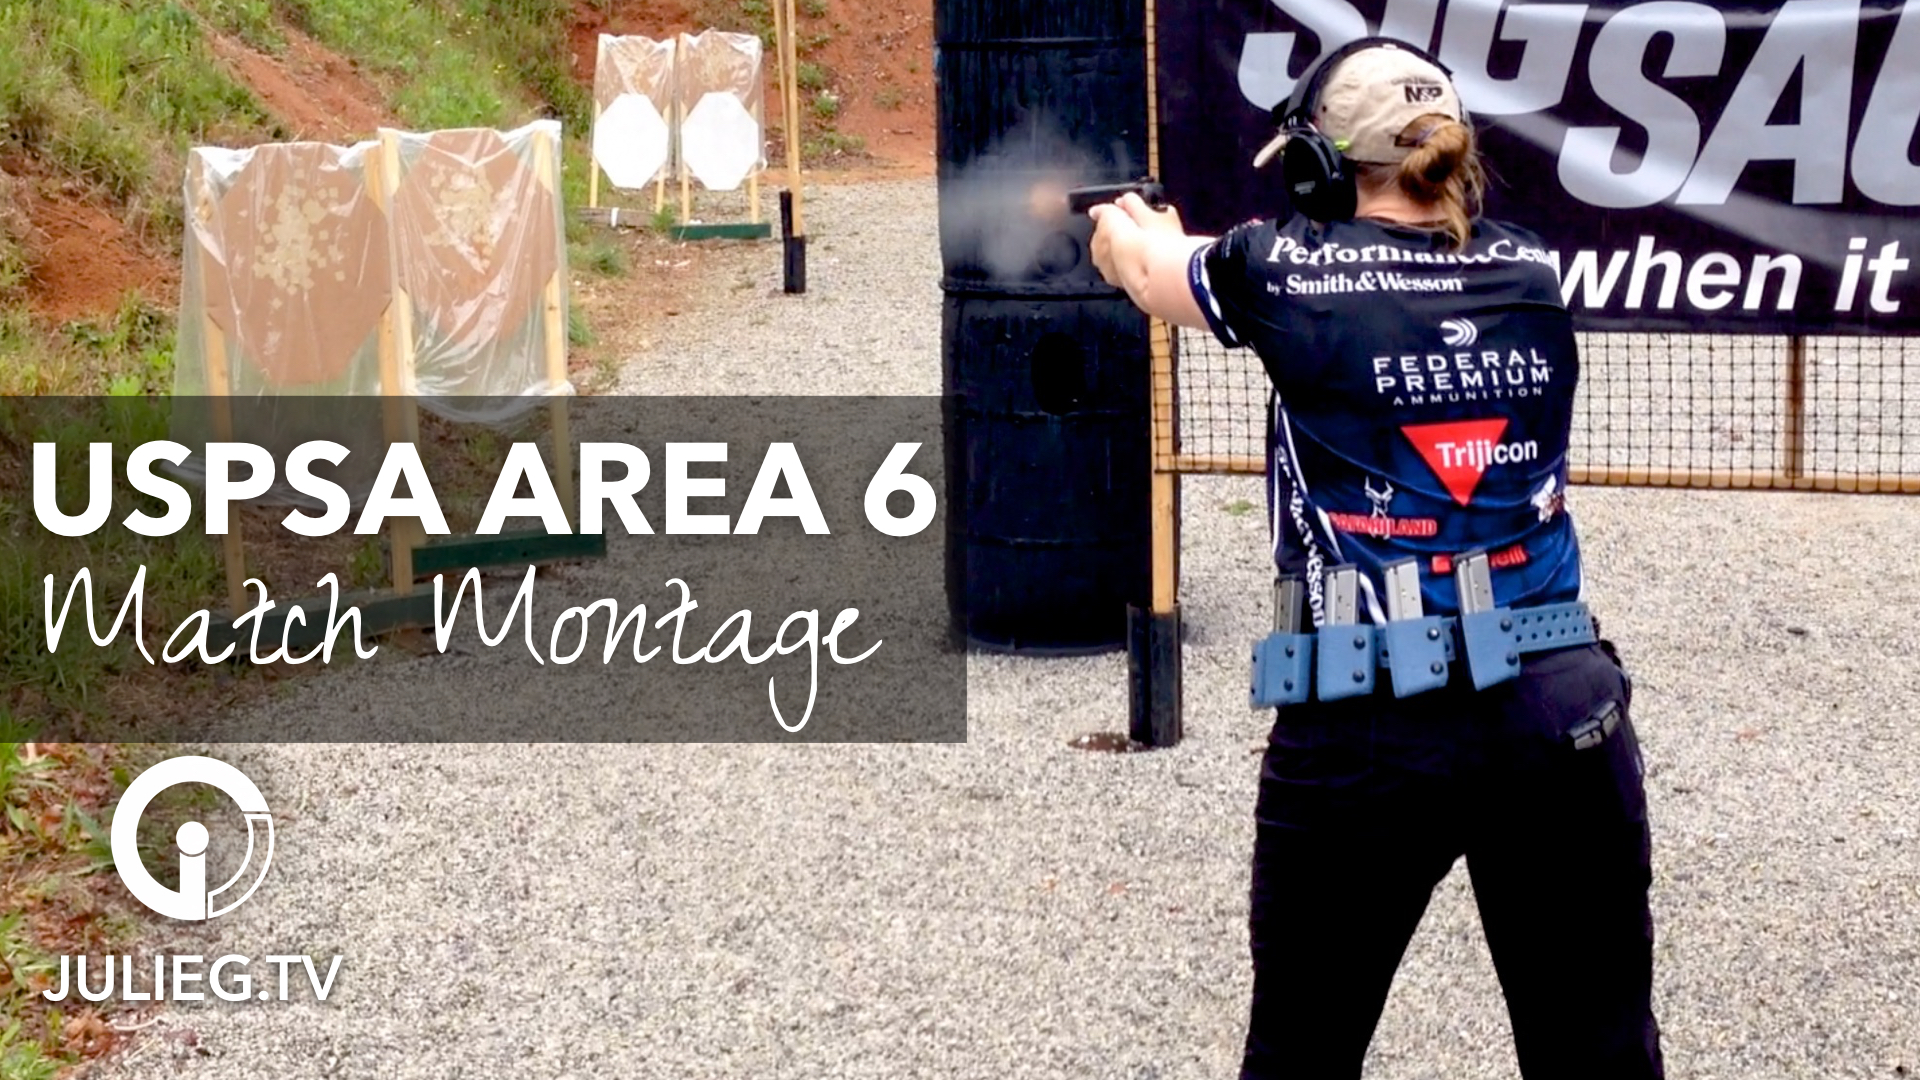 Julie Golob's Match Montage from USPSA Area 6